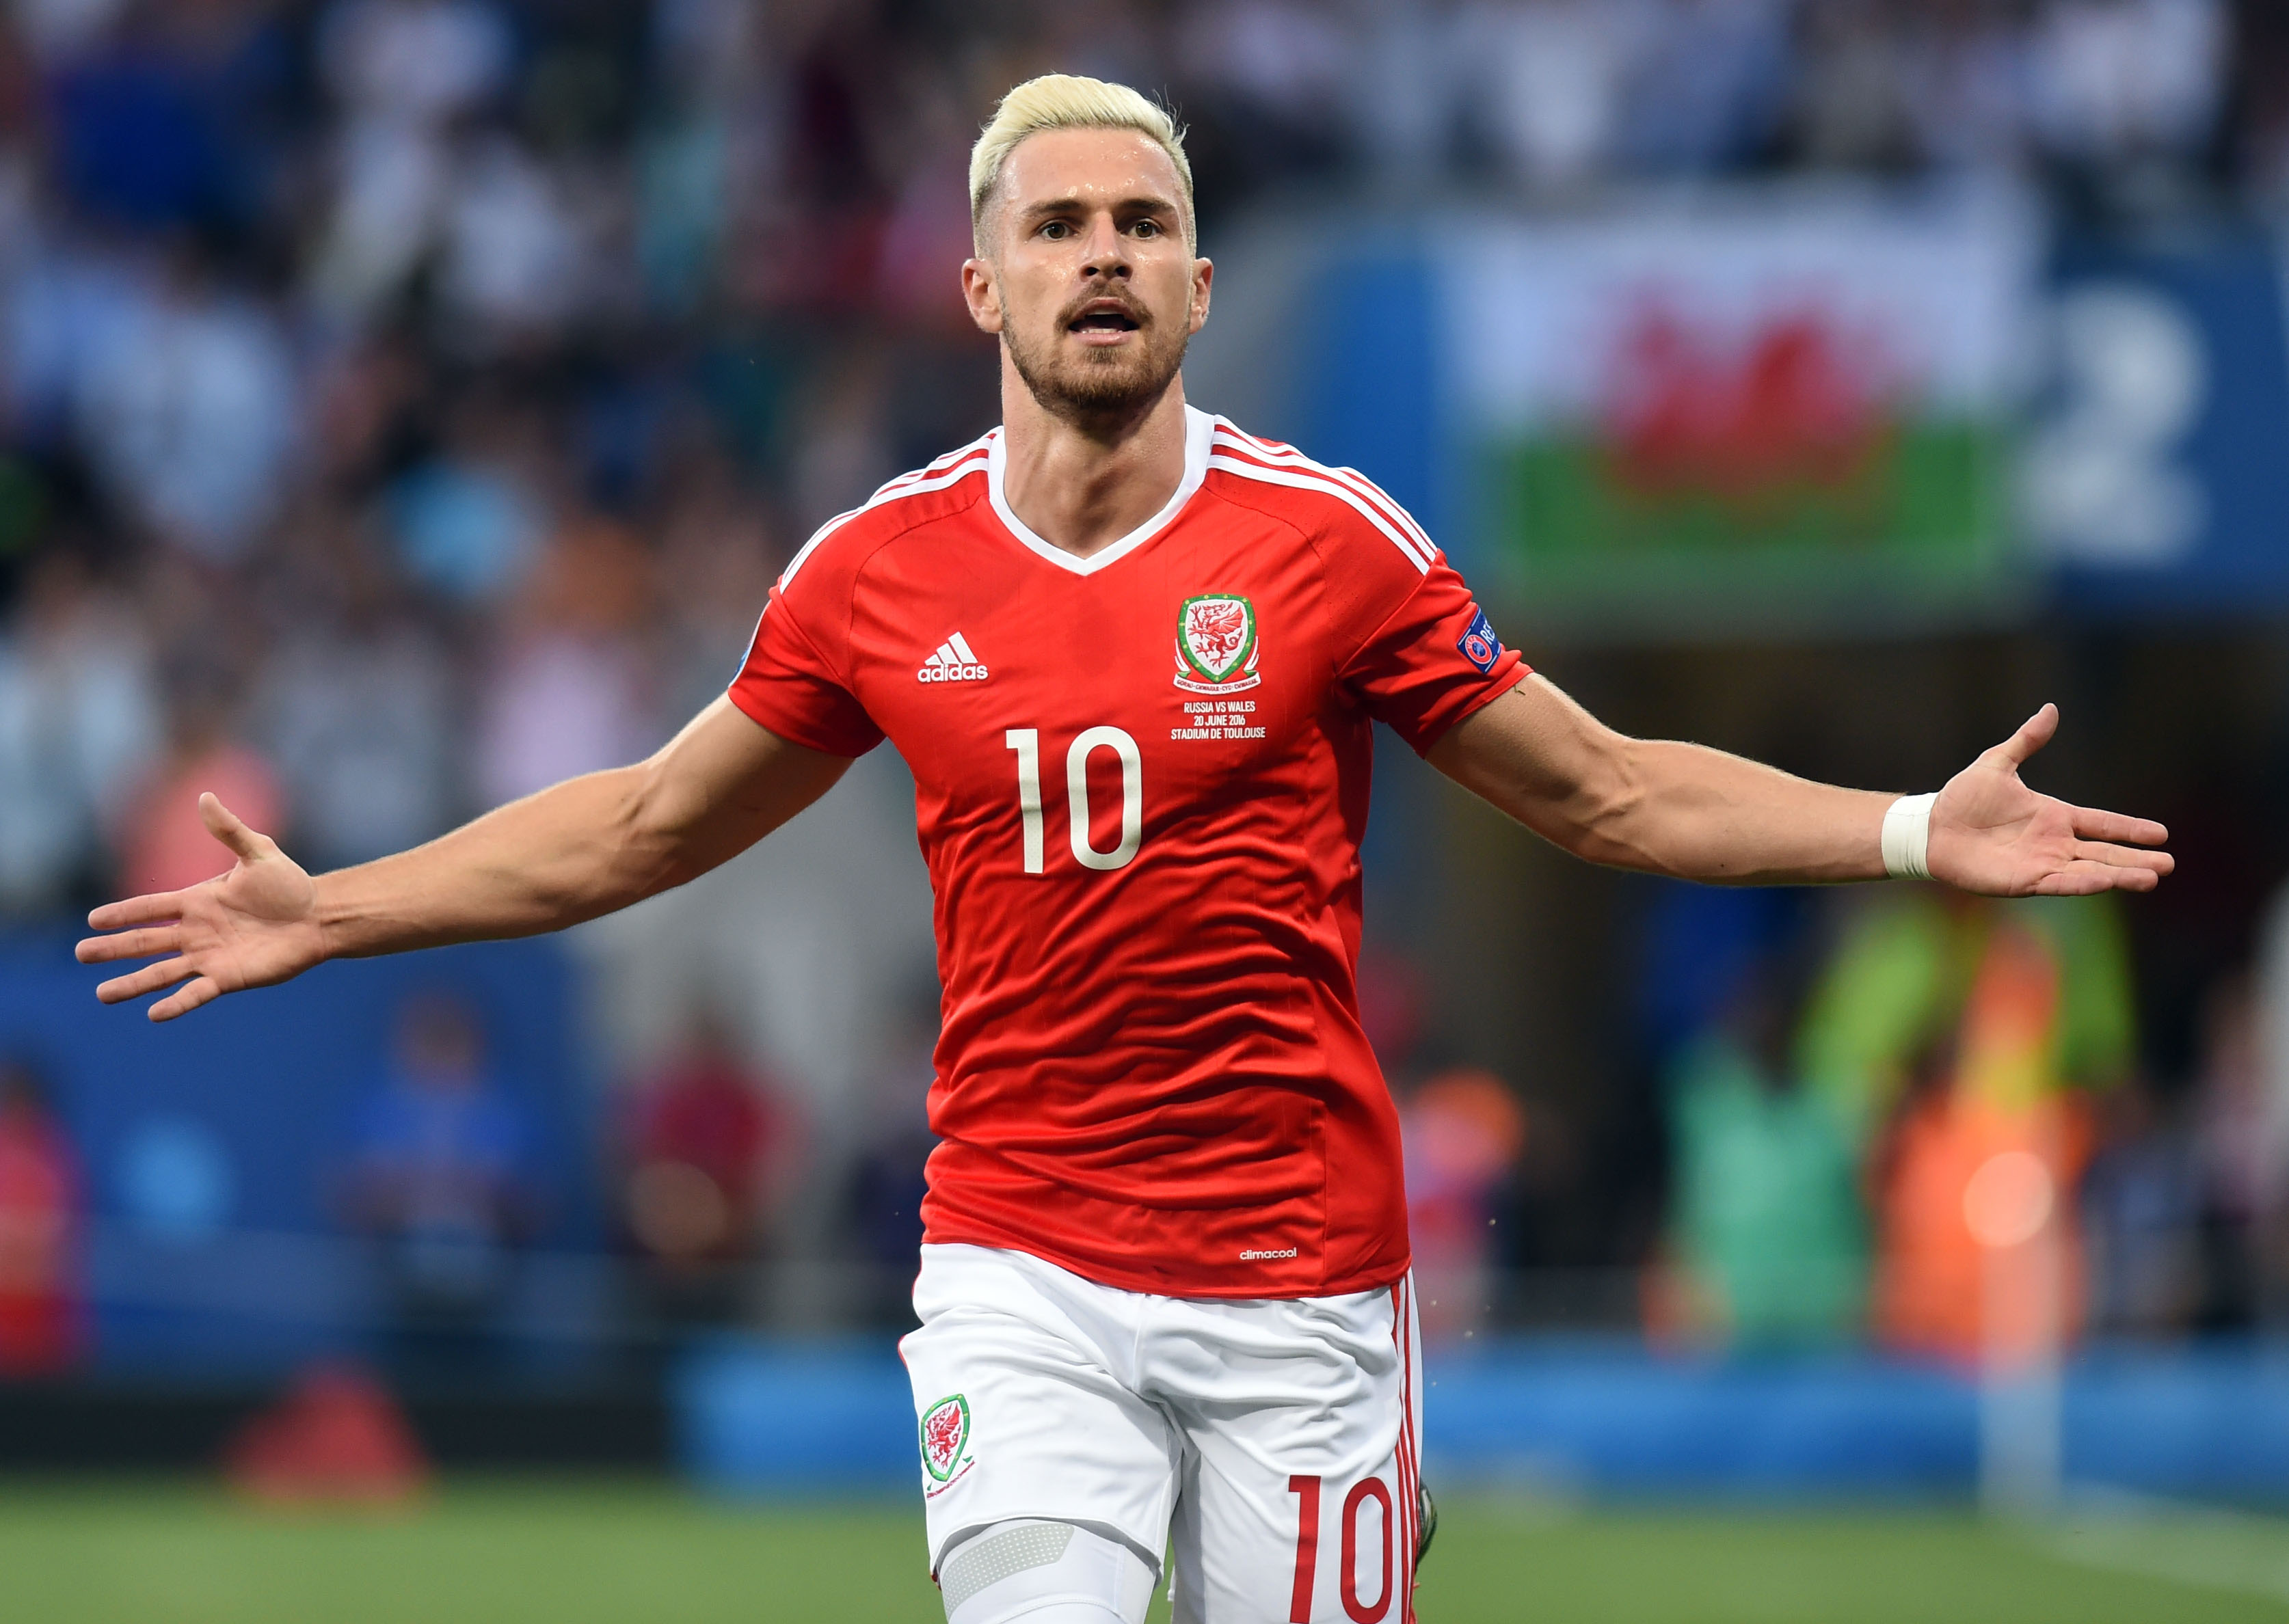 Russia 0 Wales 3: Aaron Ramsey shines brightest as Welsh cruise into last 16